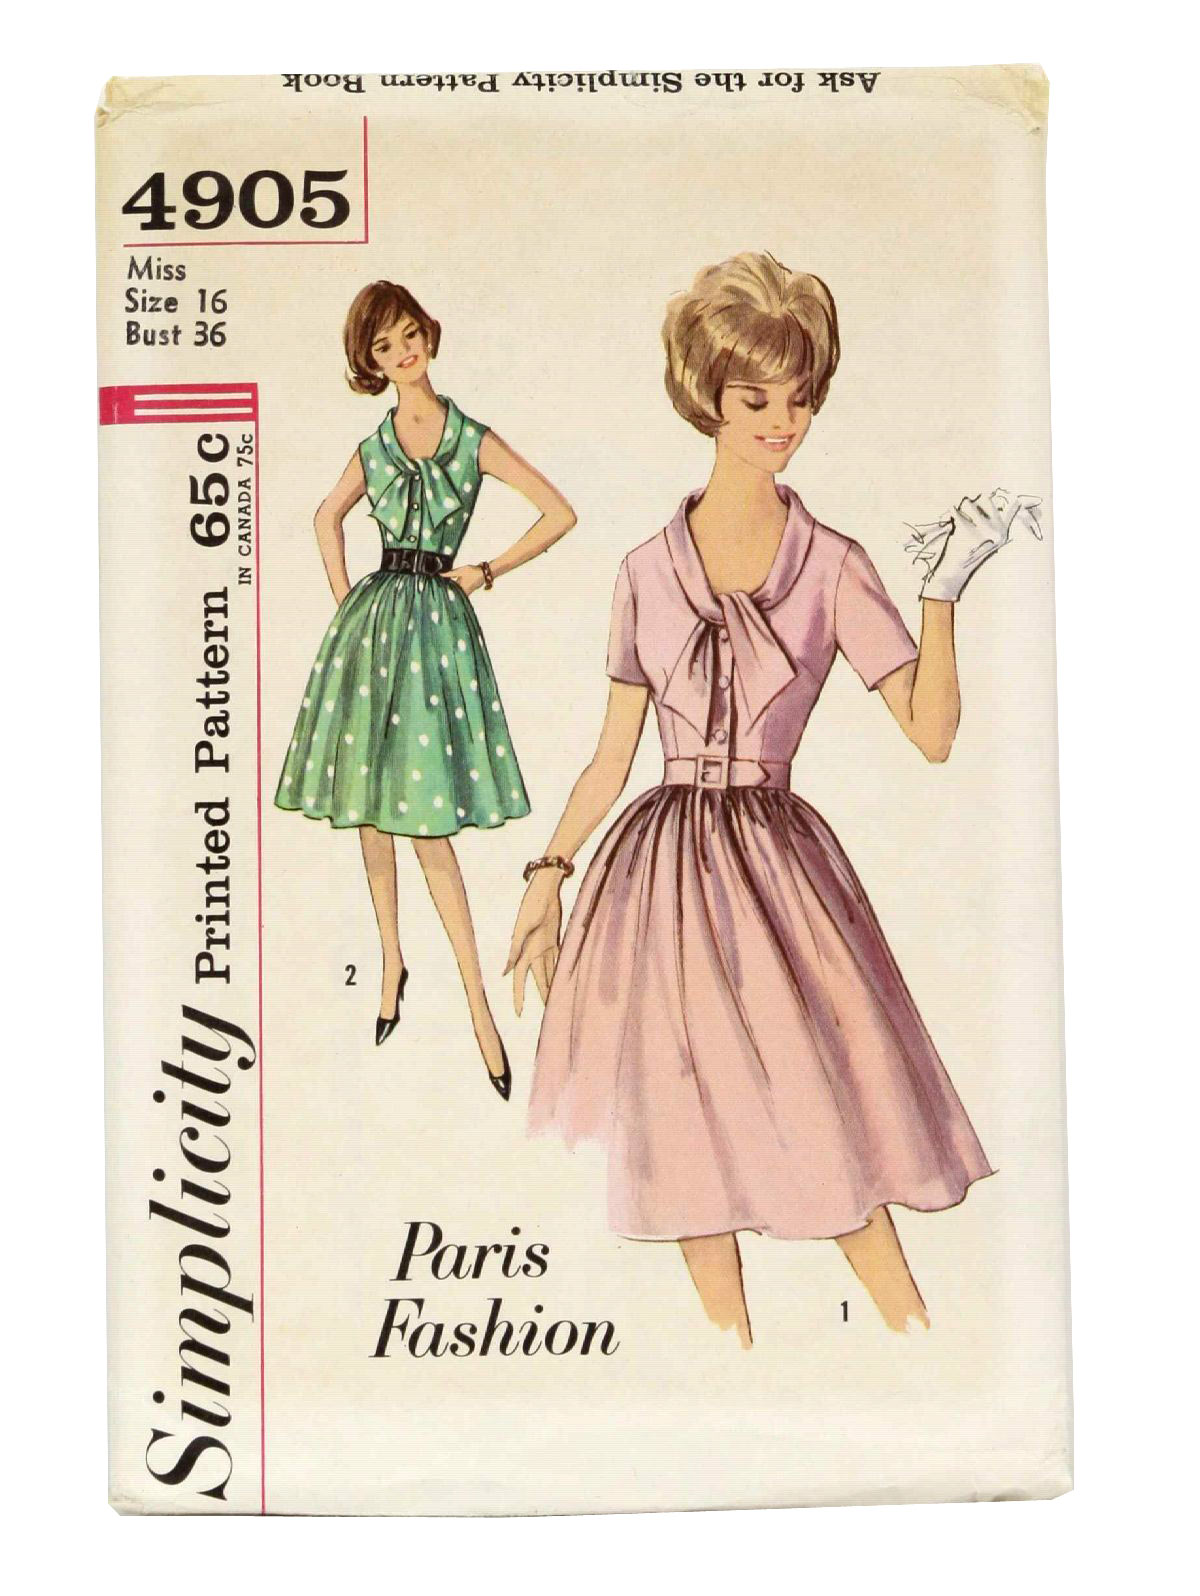 10 Most Elegant & Eloquent 1960's Fashion Trends for Women